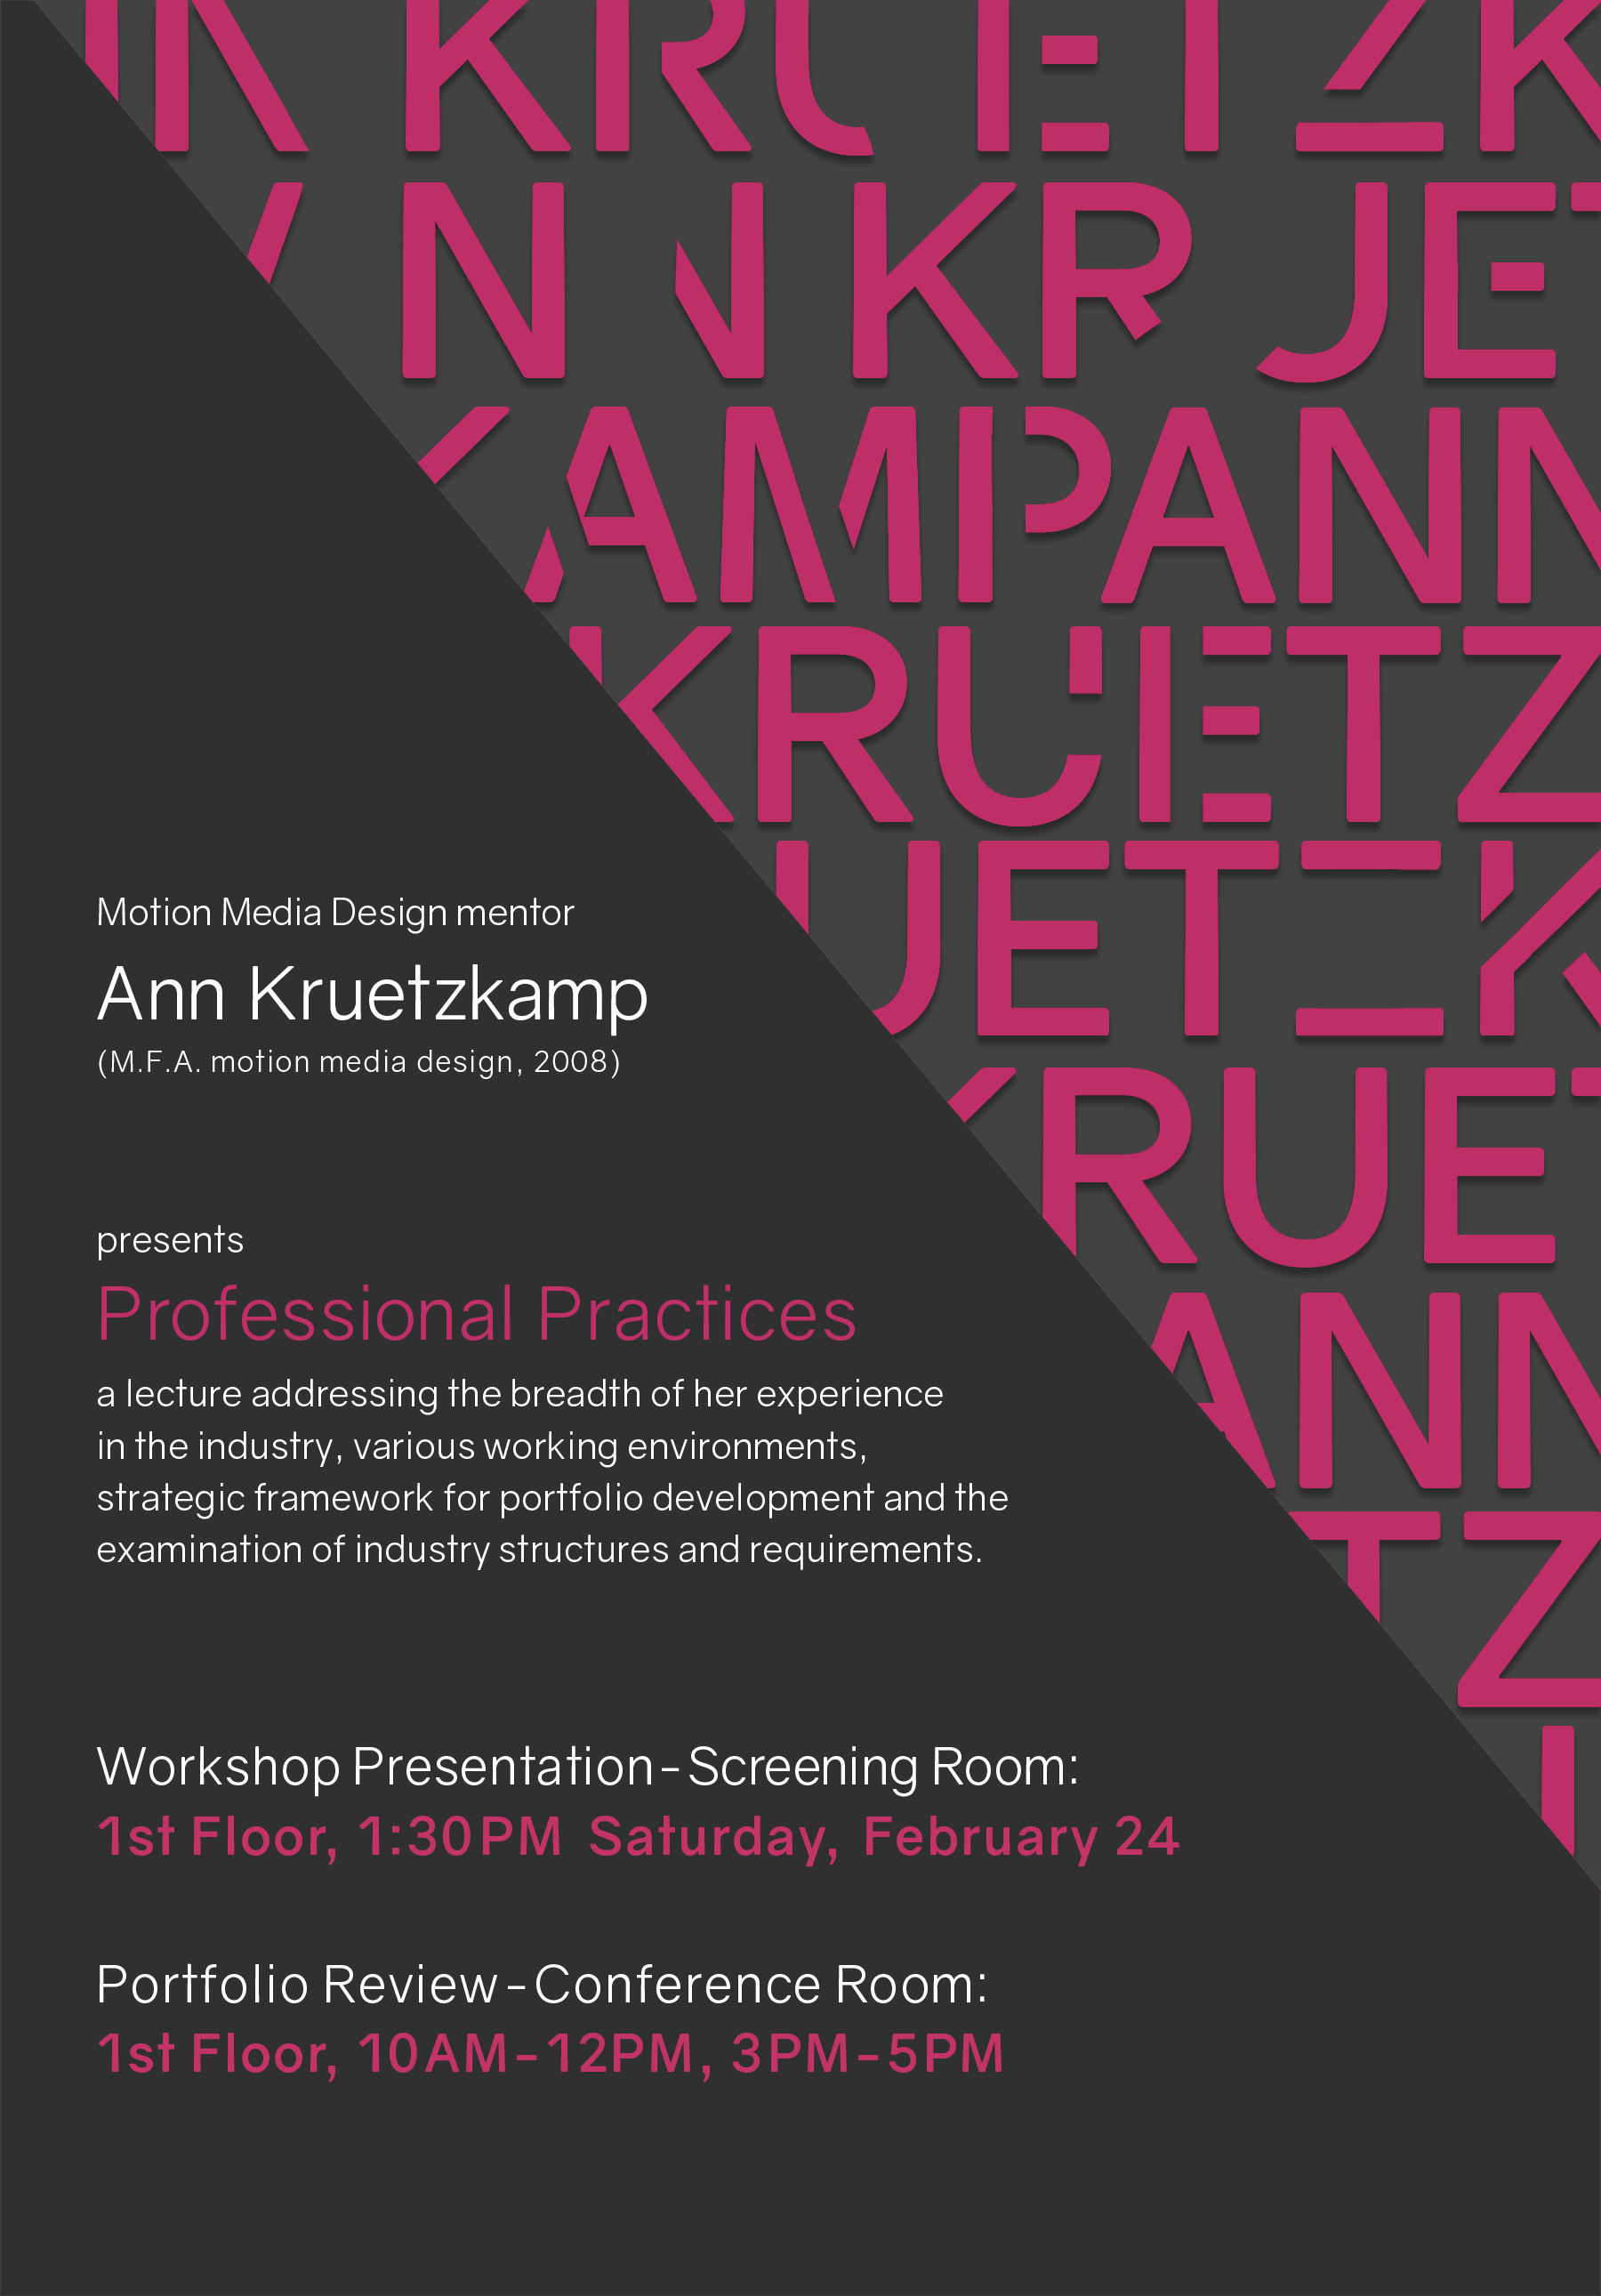 Motion Media Design Mentor – Ann Kruetzkamp